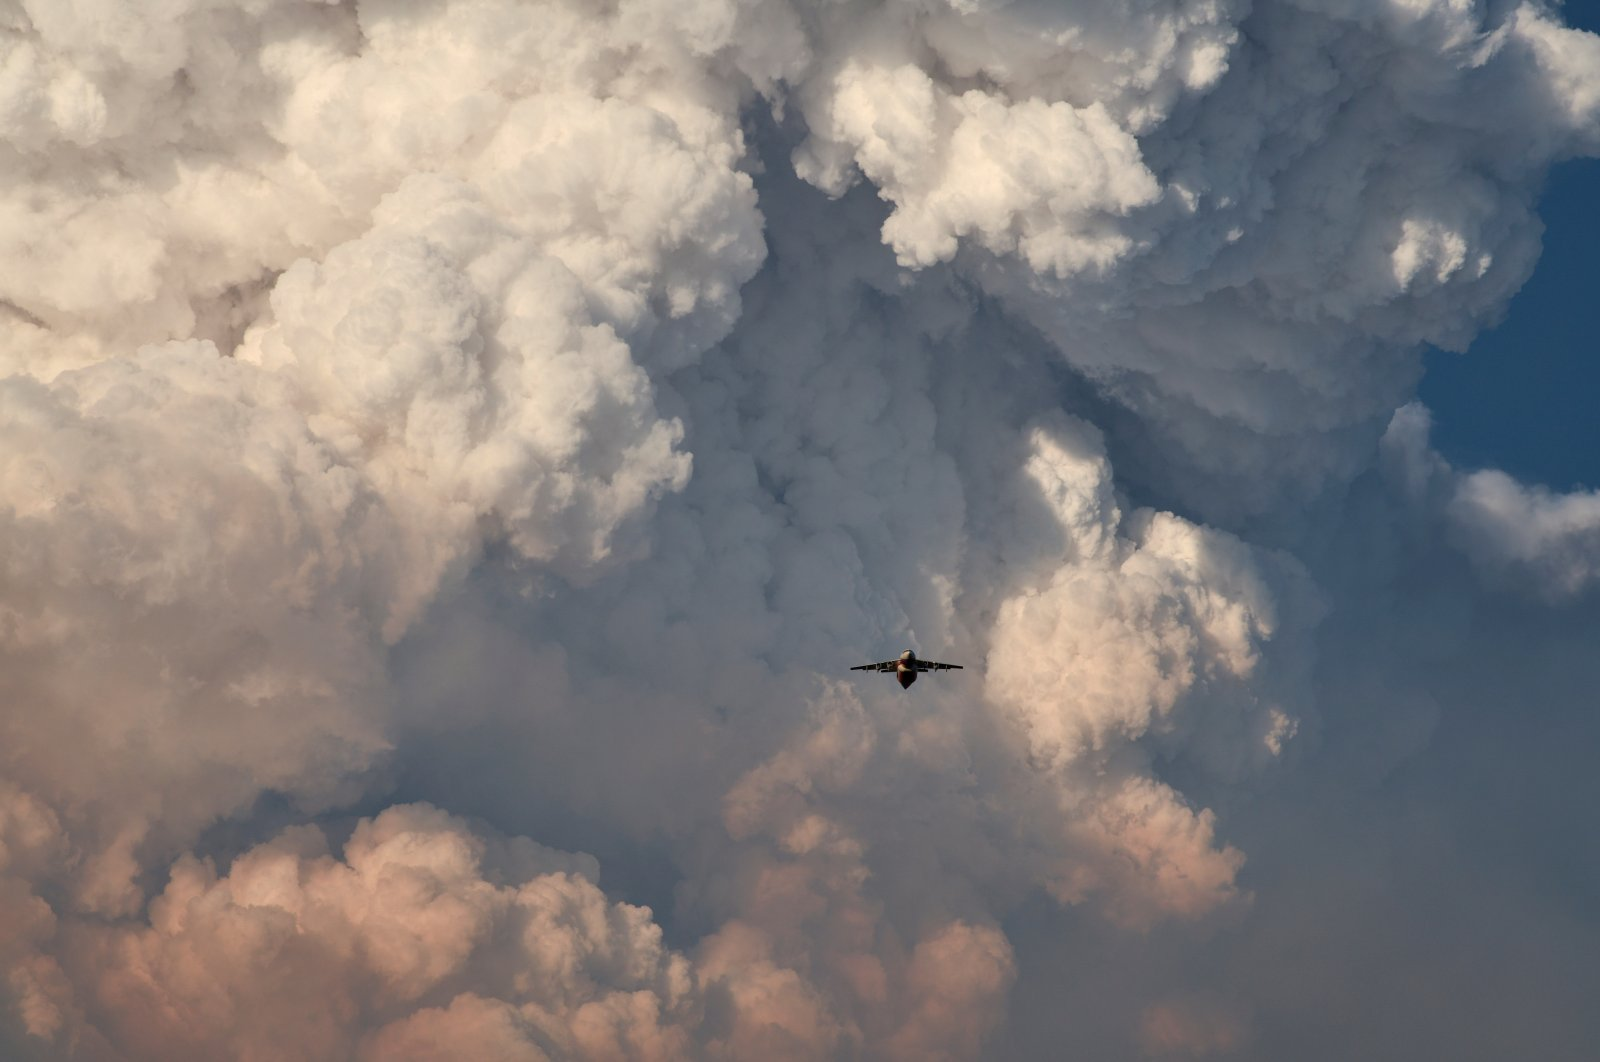 A firefighting aircraft returns to base amid massive plumes of smoke after dropping flame-retarding chemicals on the Bootleg Fire, as it expands to over 225,000 acres, in Bly, Oregon, U.S., July 15, 2021. (Reuters Photo)